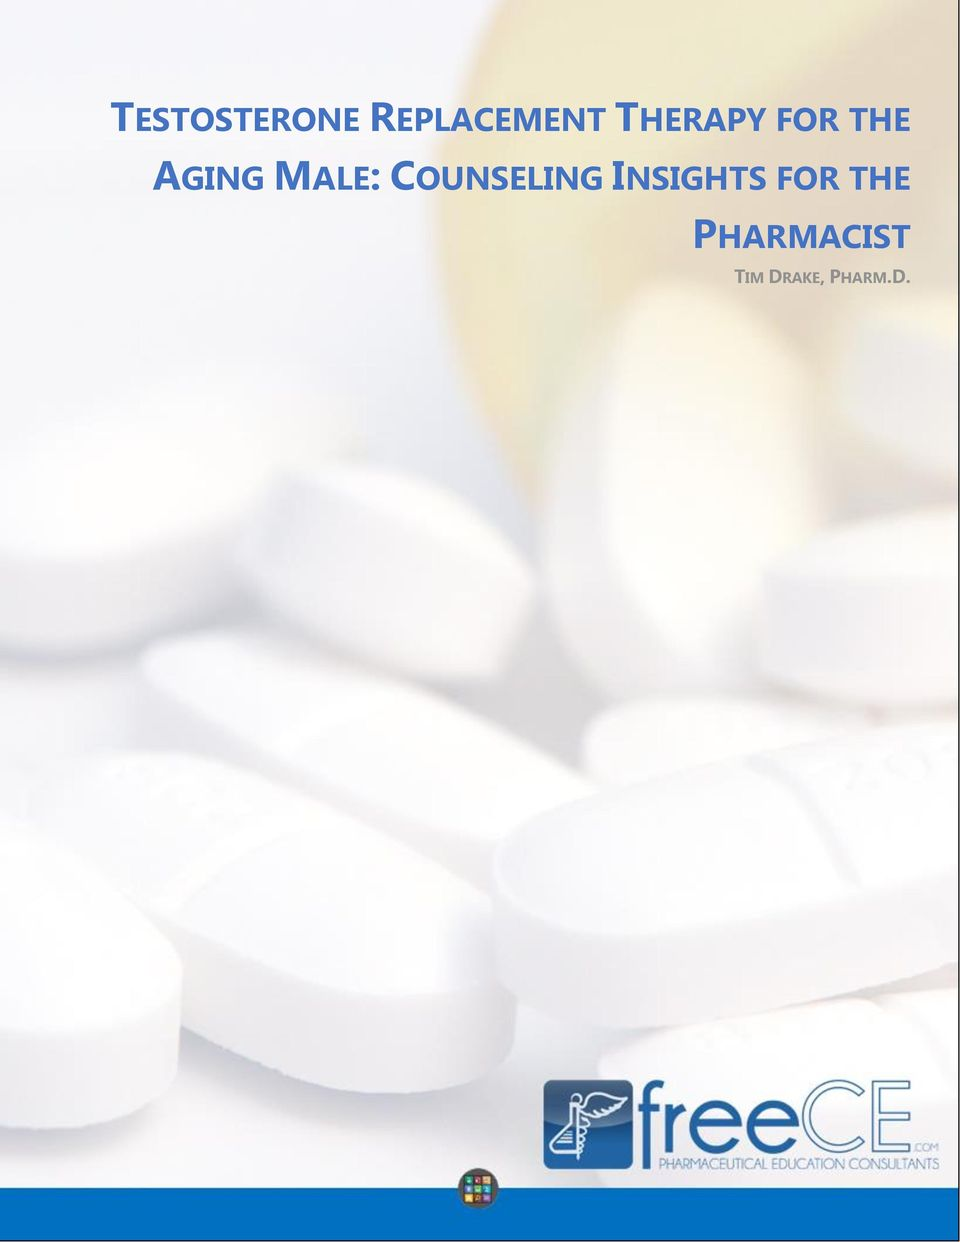 COUNSELING INSIGHTS FOR THE